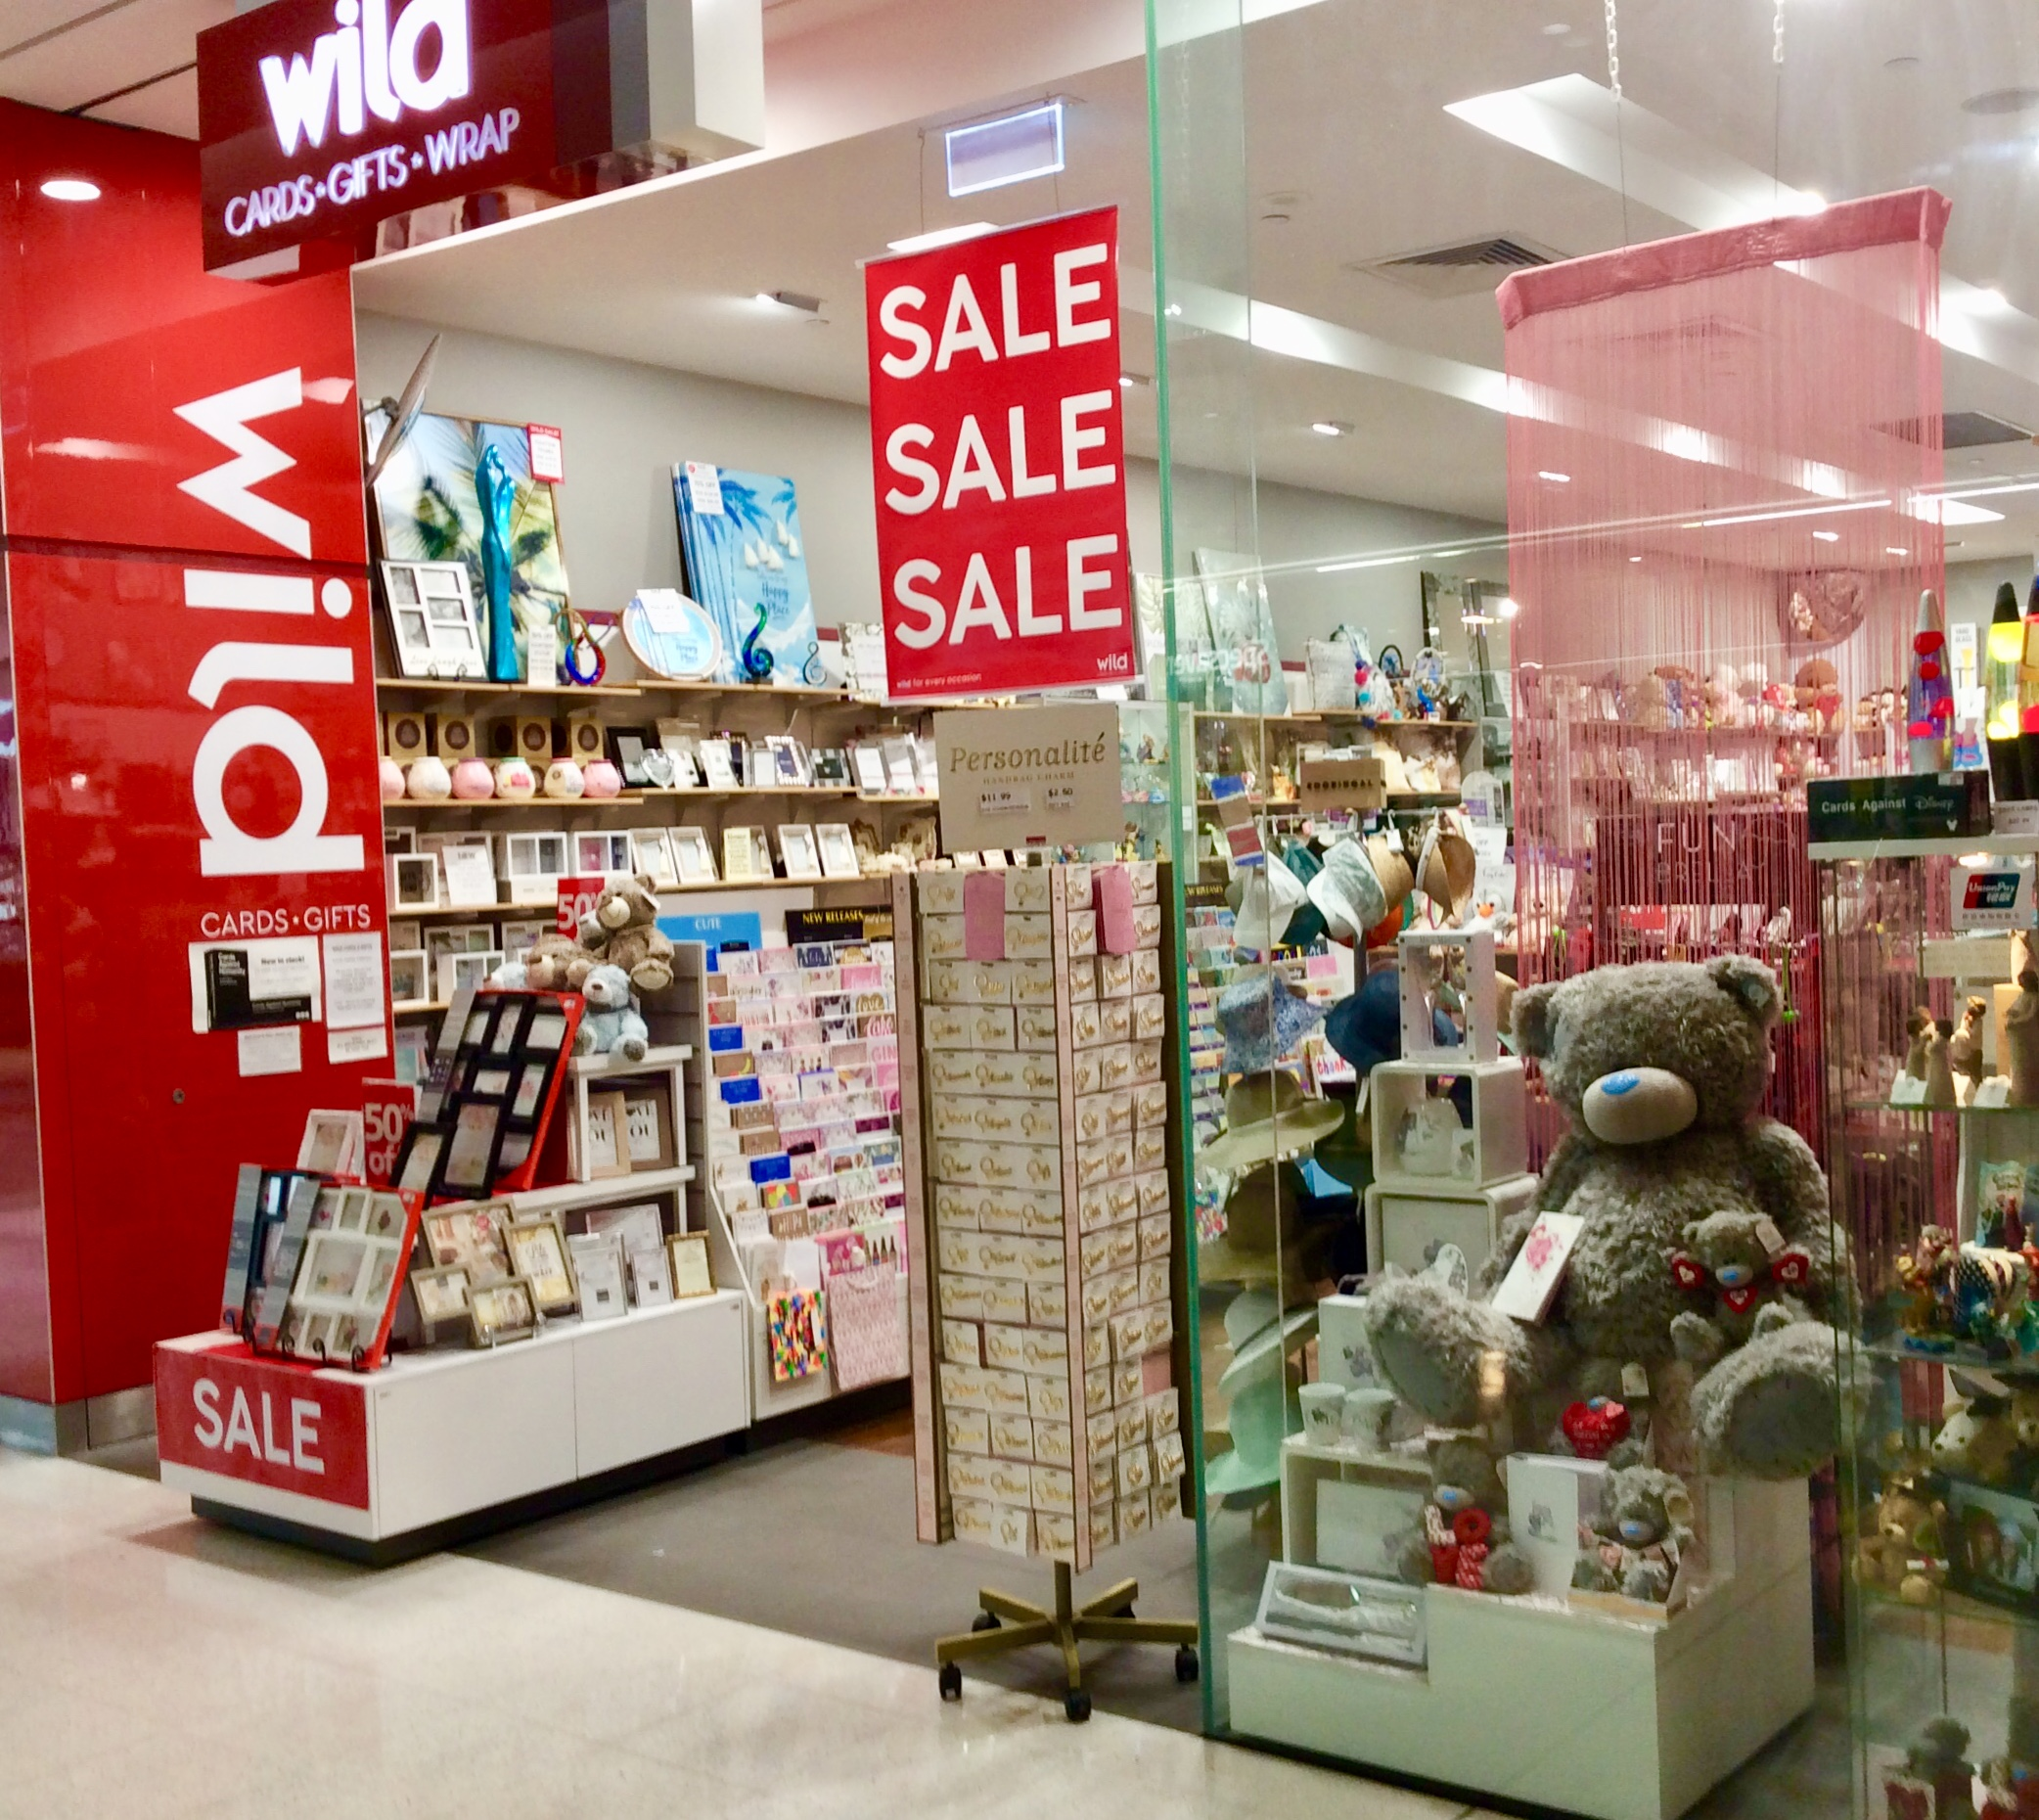 Wild Cards & Gifts | Westfield Garden City Brisbane